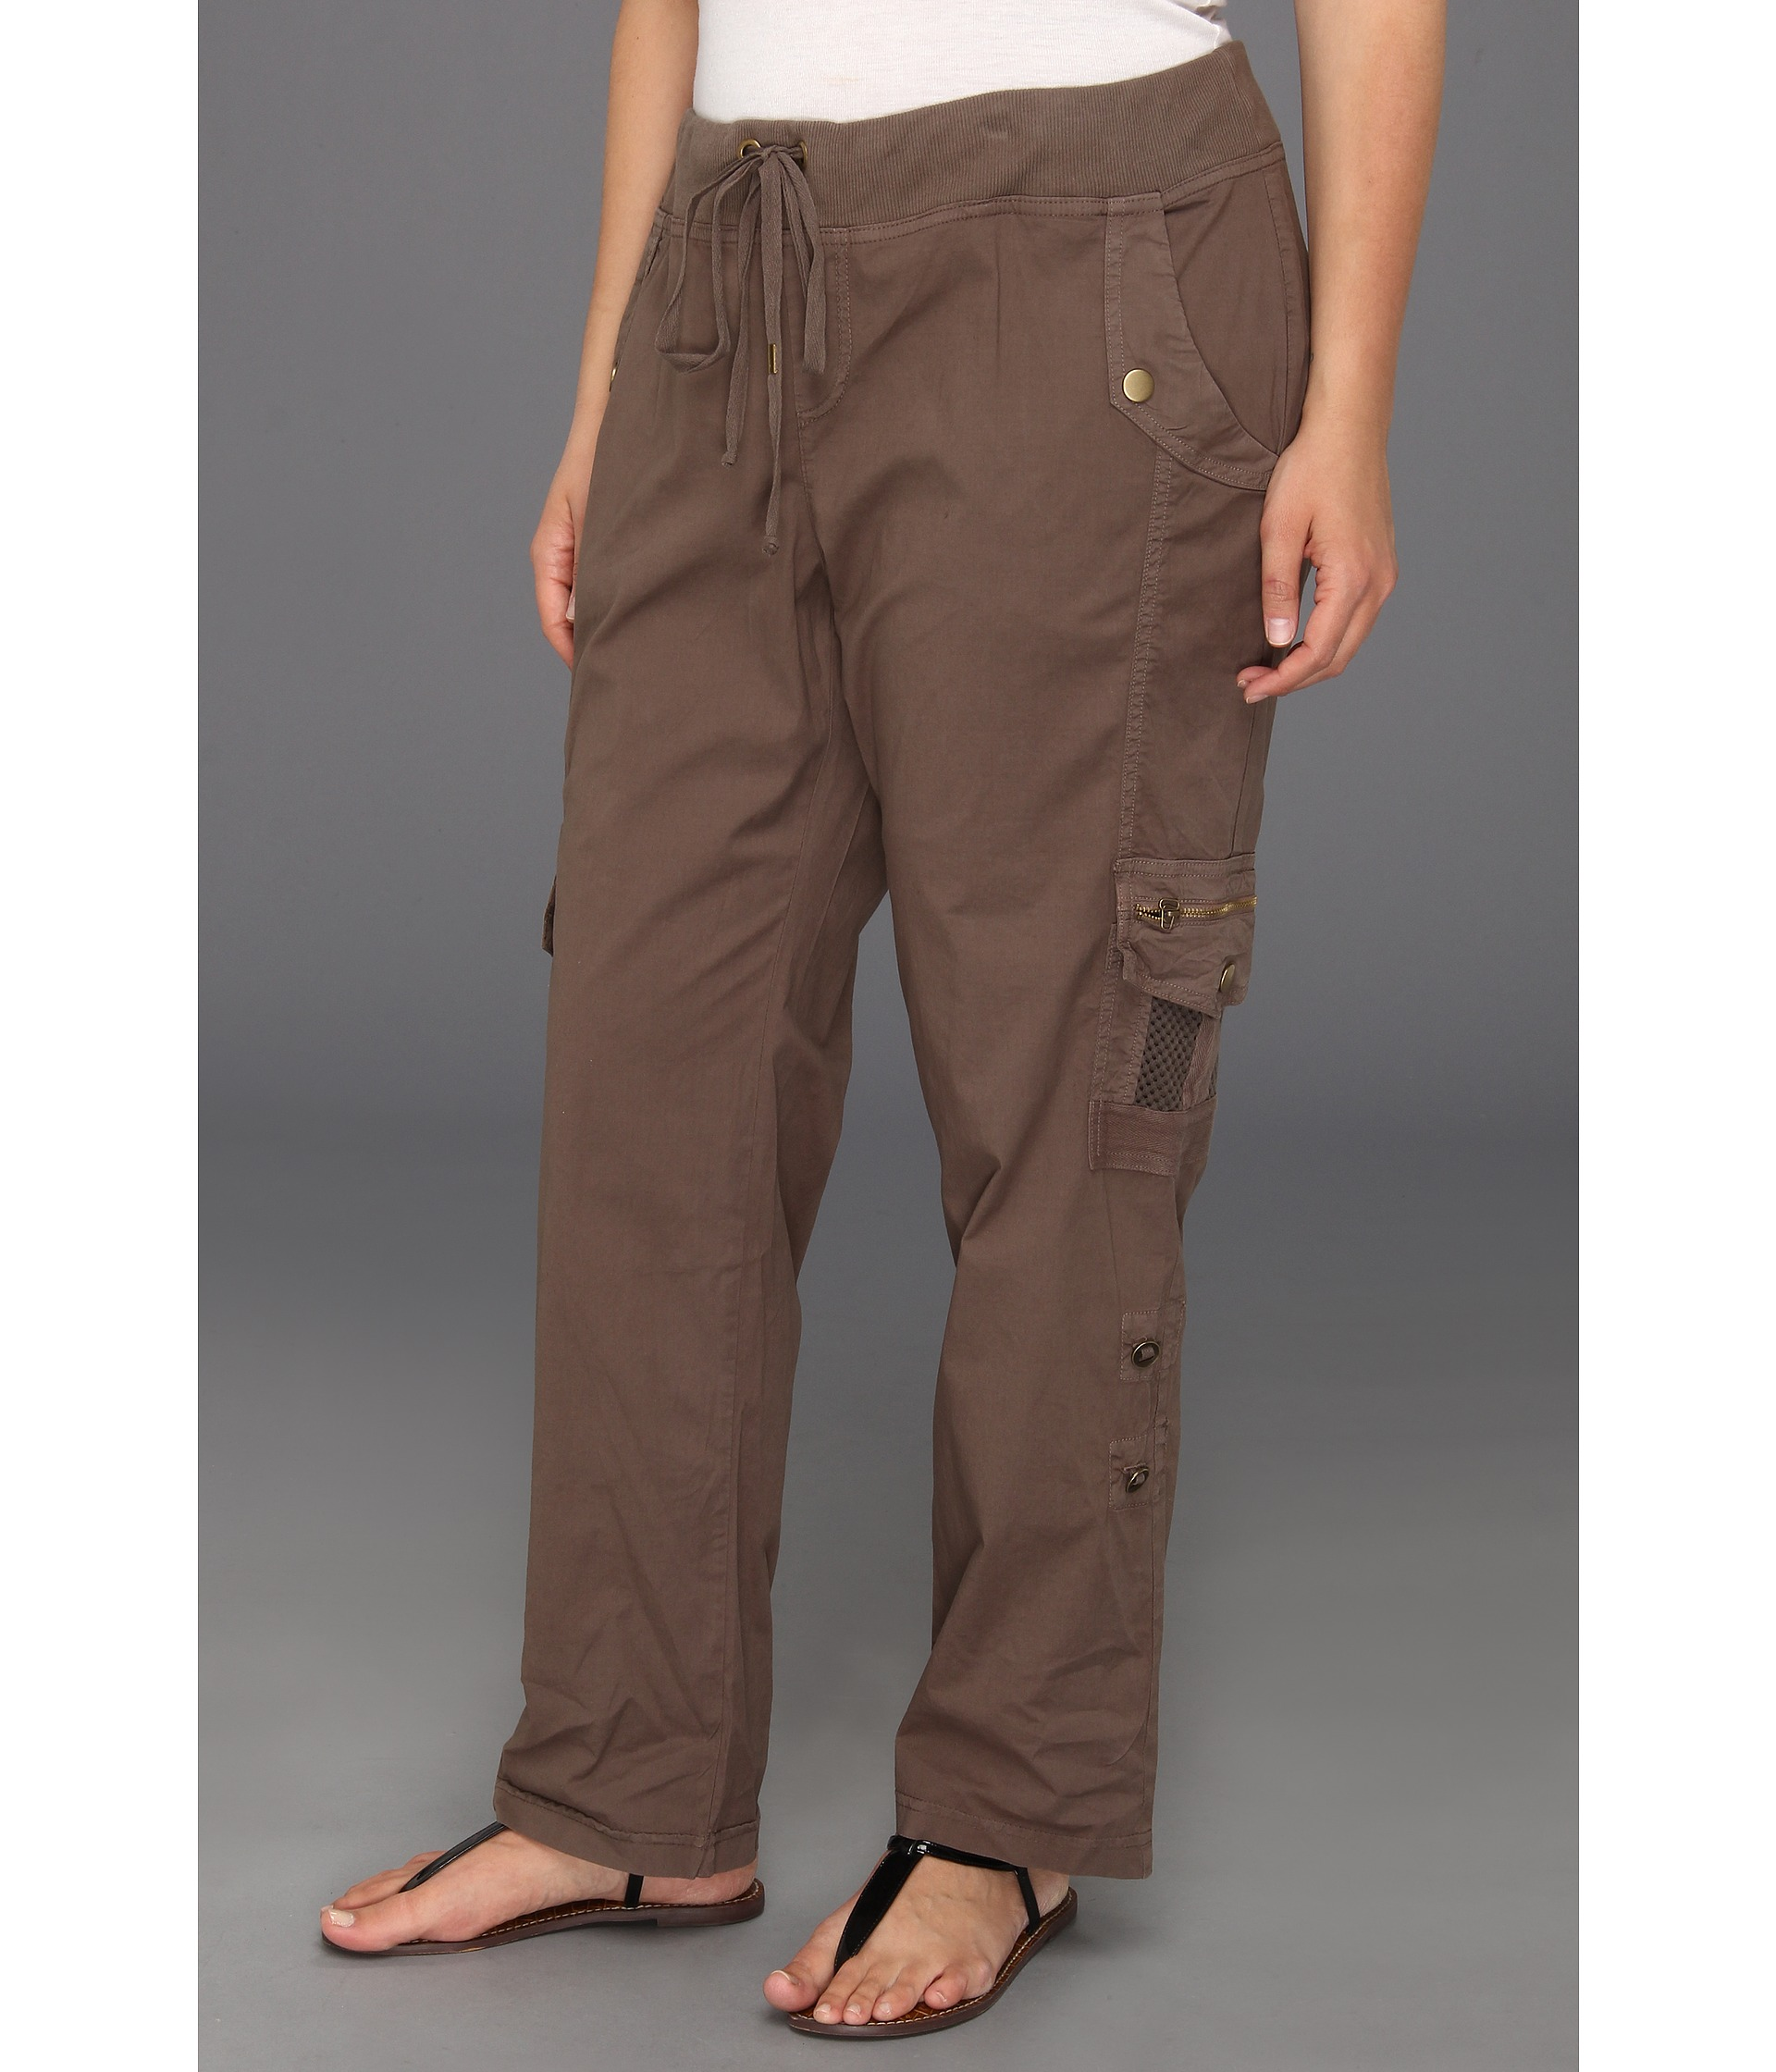 Excellent Love Your Size Women39s Plus Embroidered Cargo Pants  Clothing  Women